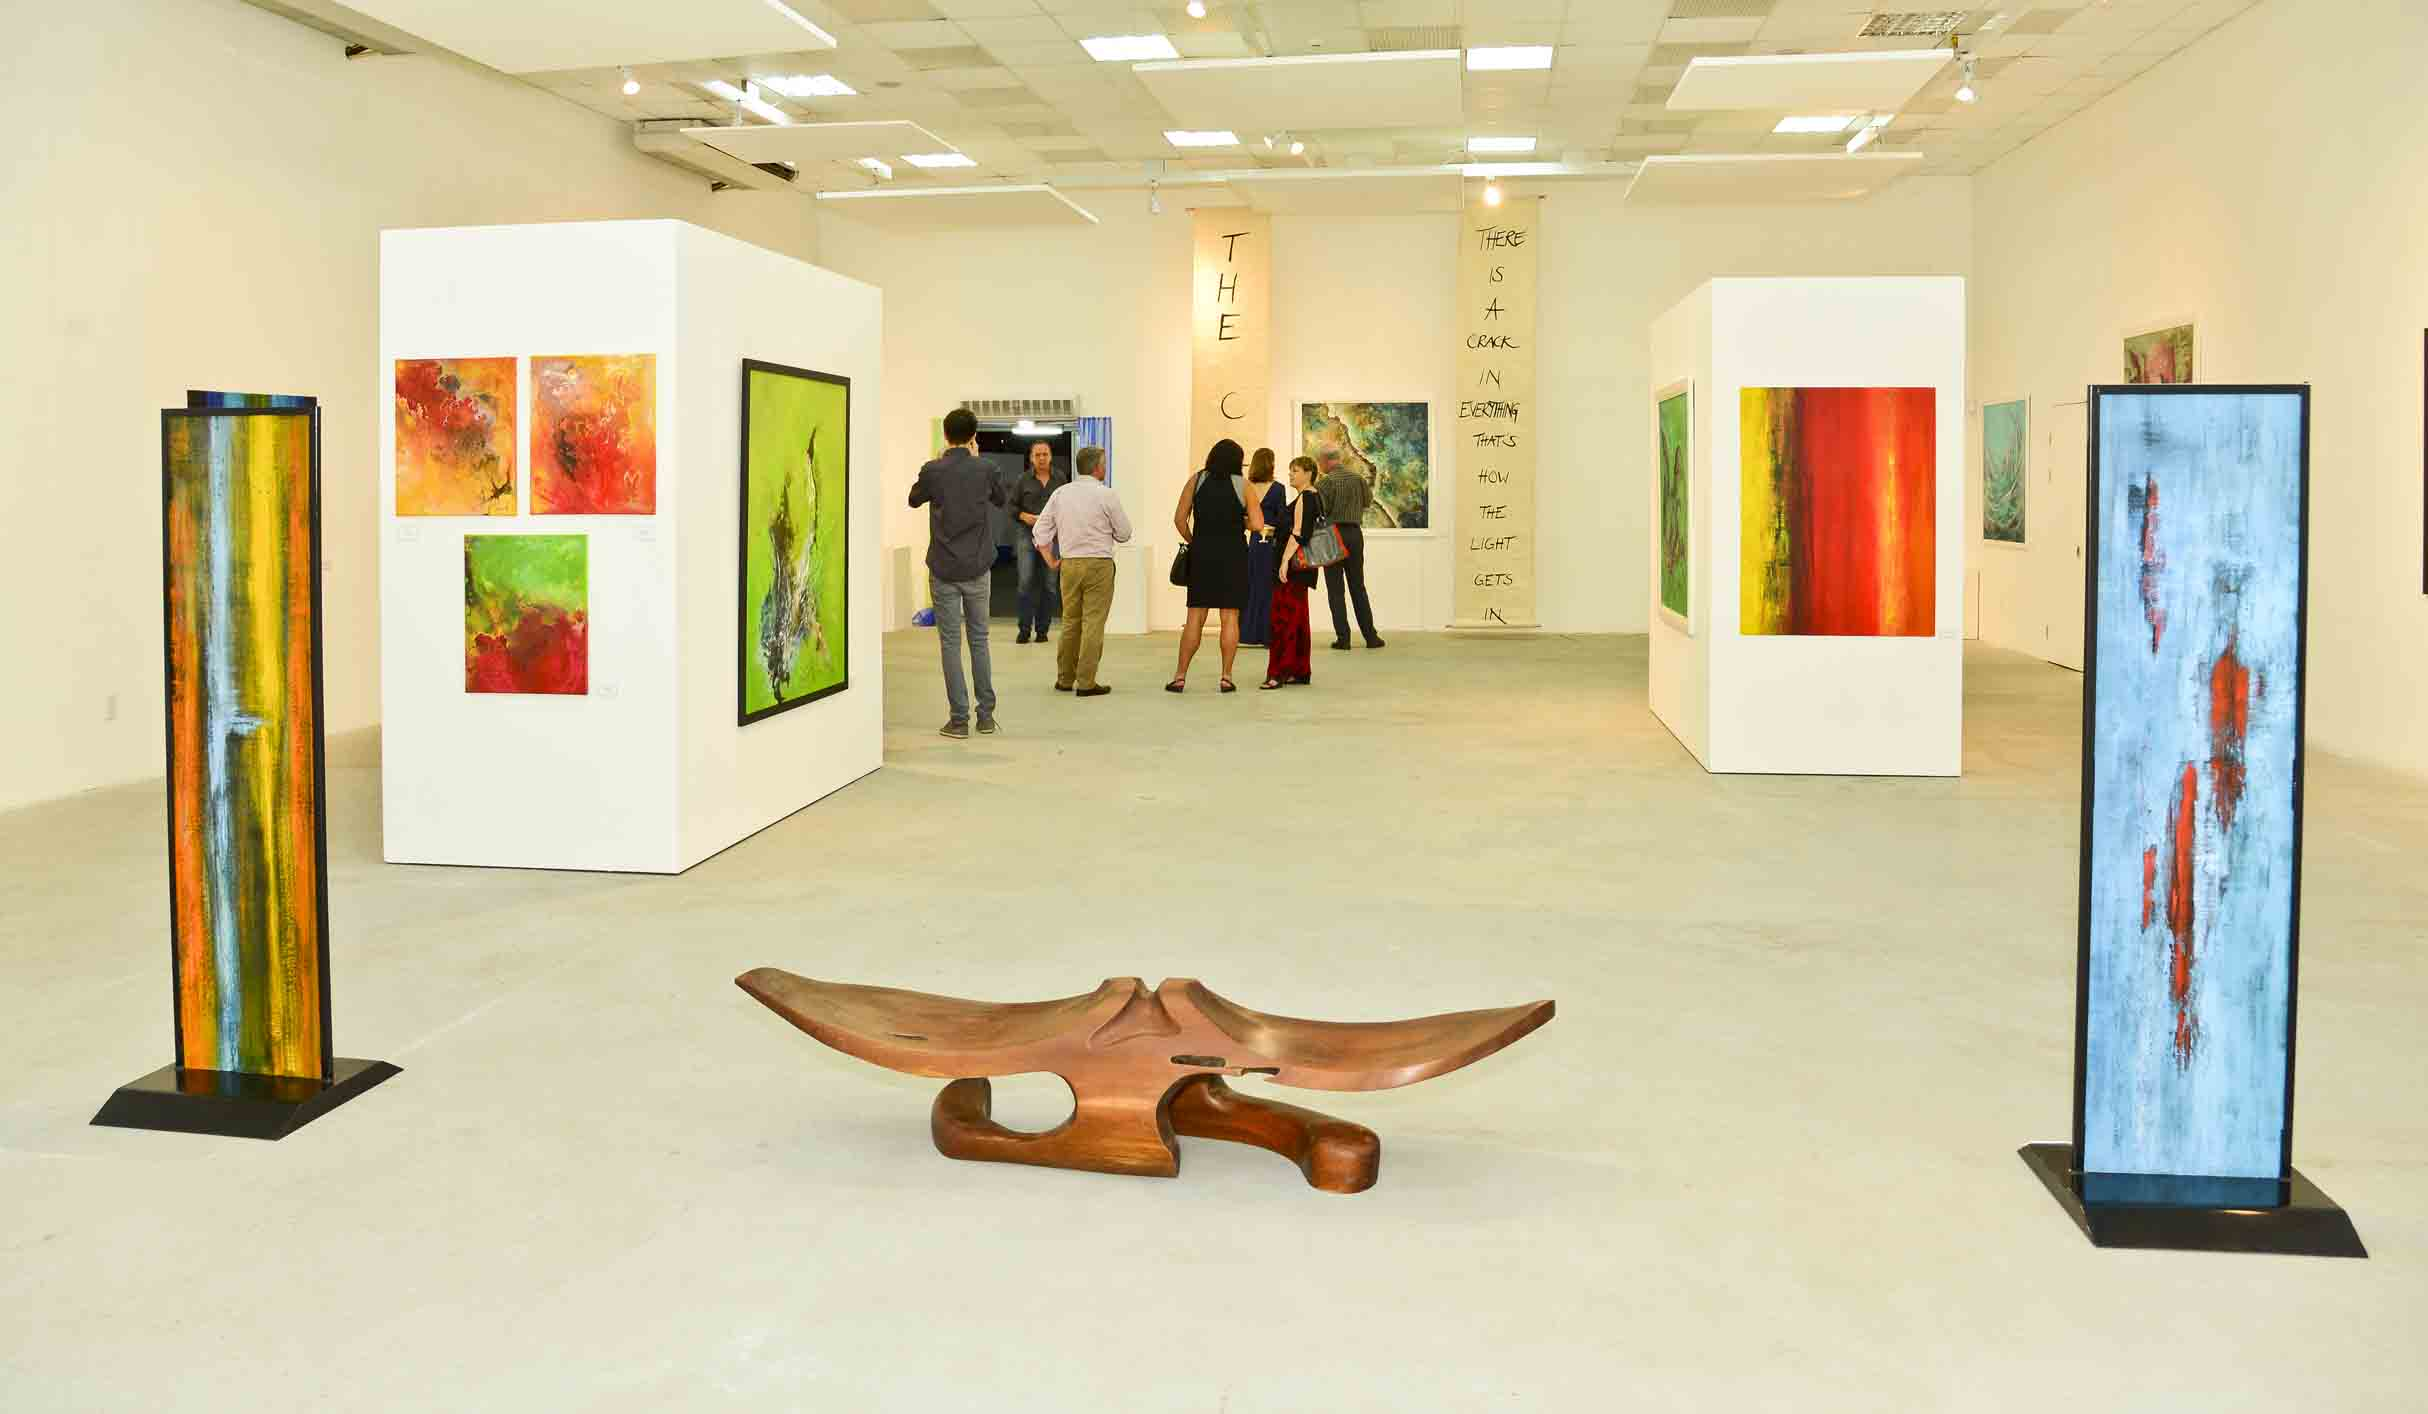 Exhibit De Hal May 2014